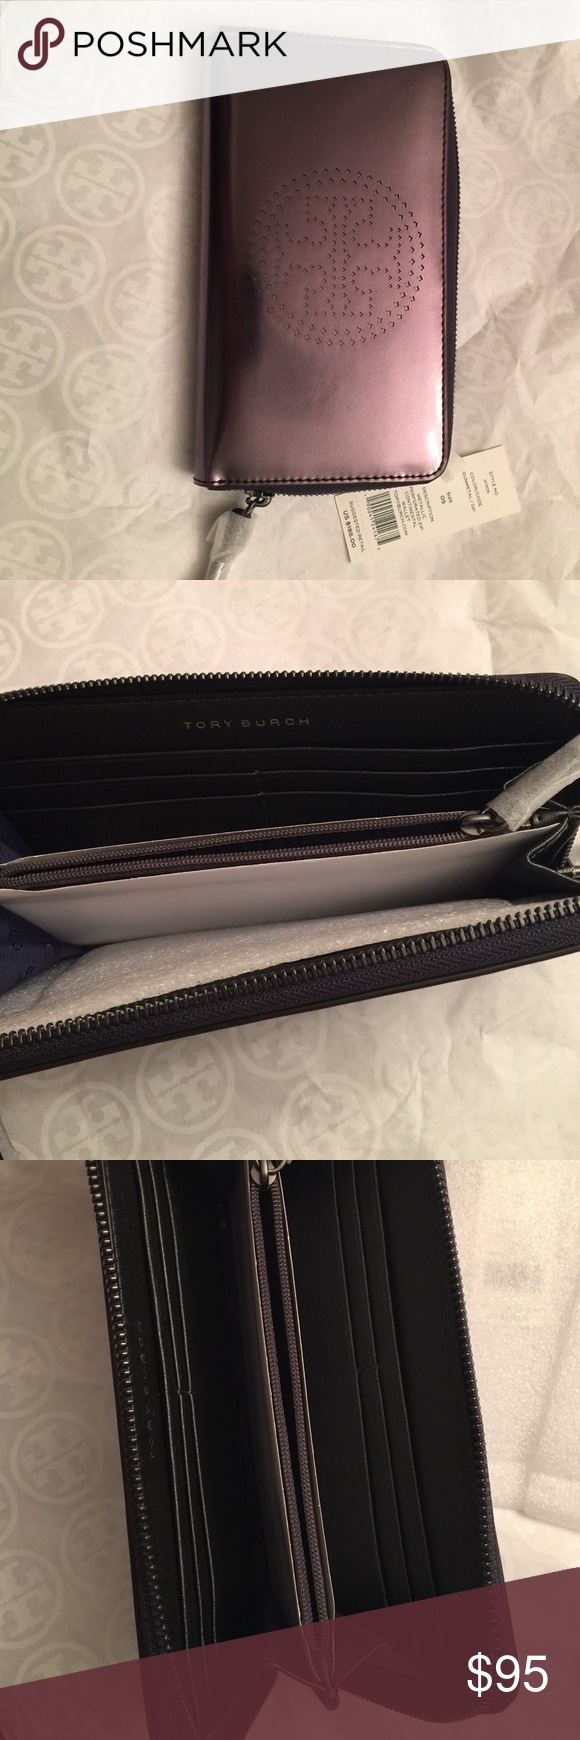 Tory BURCH wallet Metallic gunmetal continental wallet 8 card slots inside zipper compartment and 2 more slots for other items. Tory Burch Bags Wallets